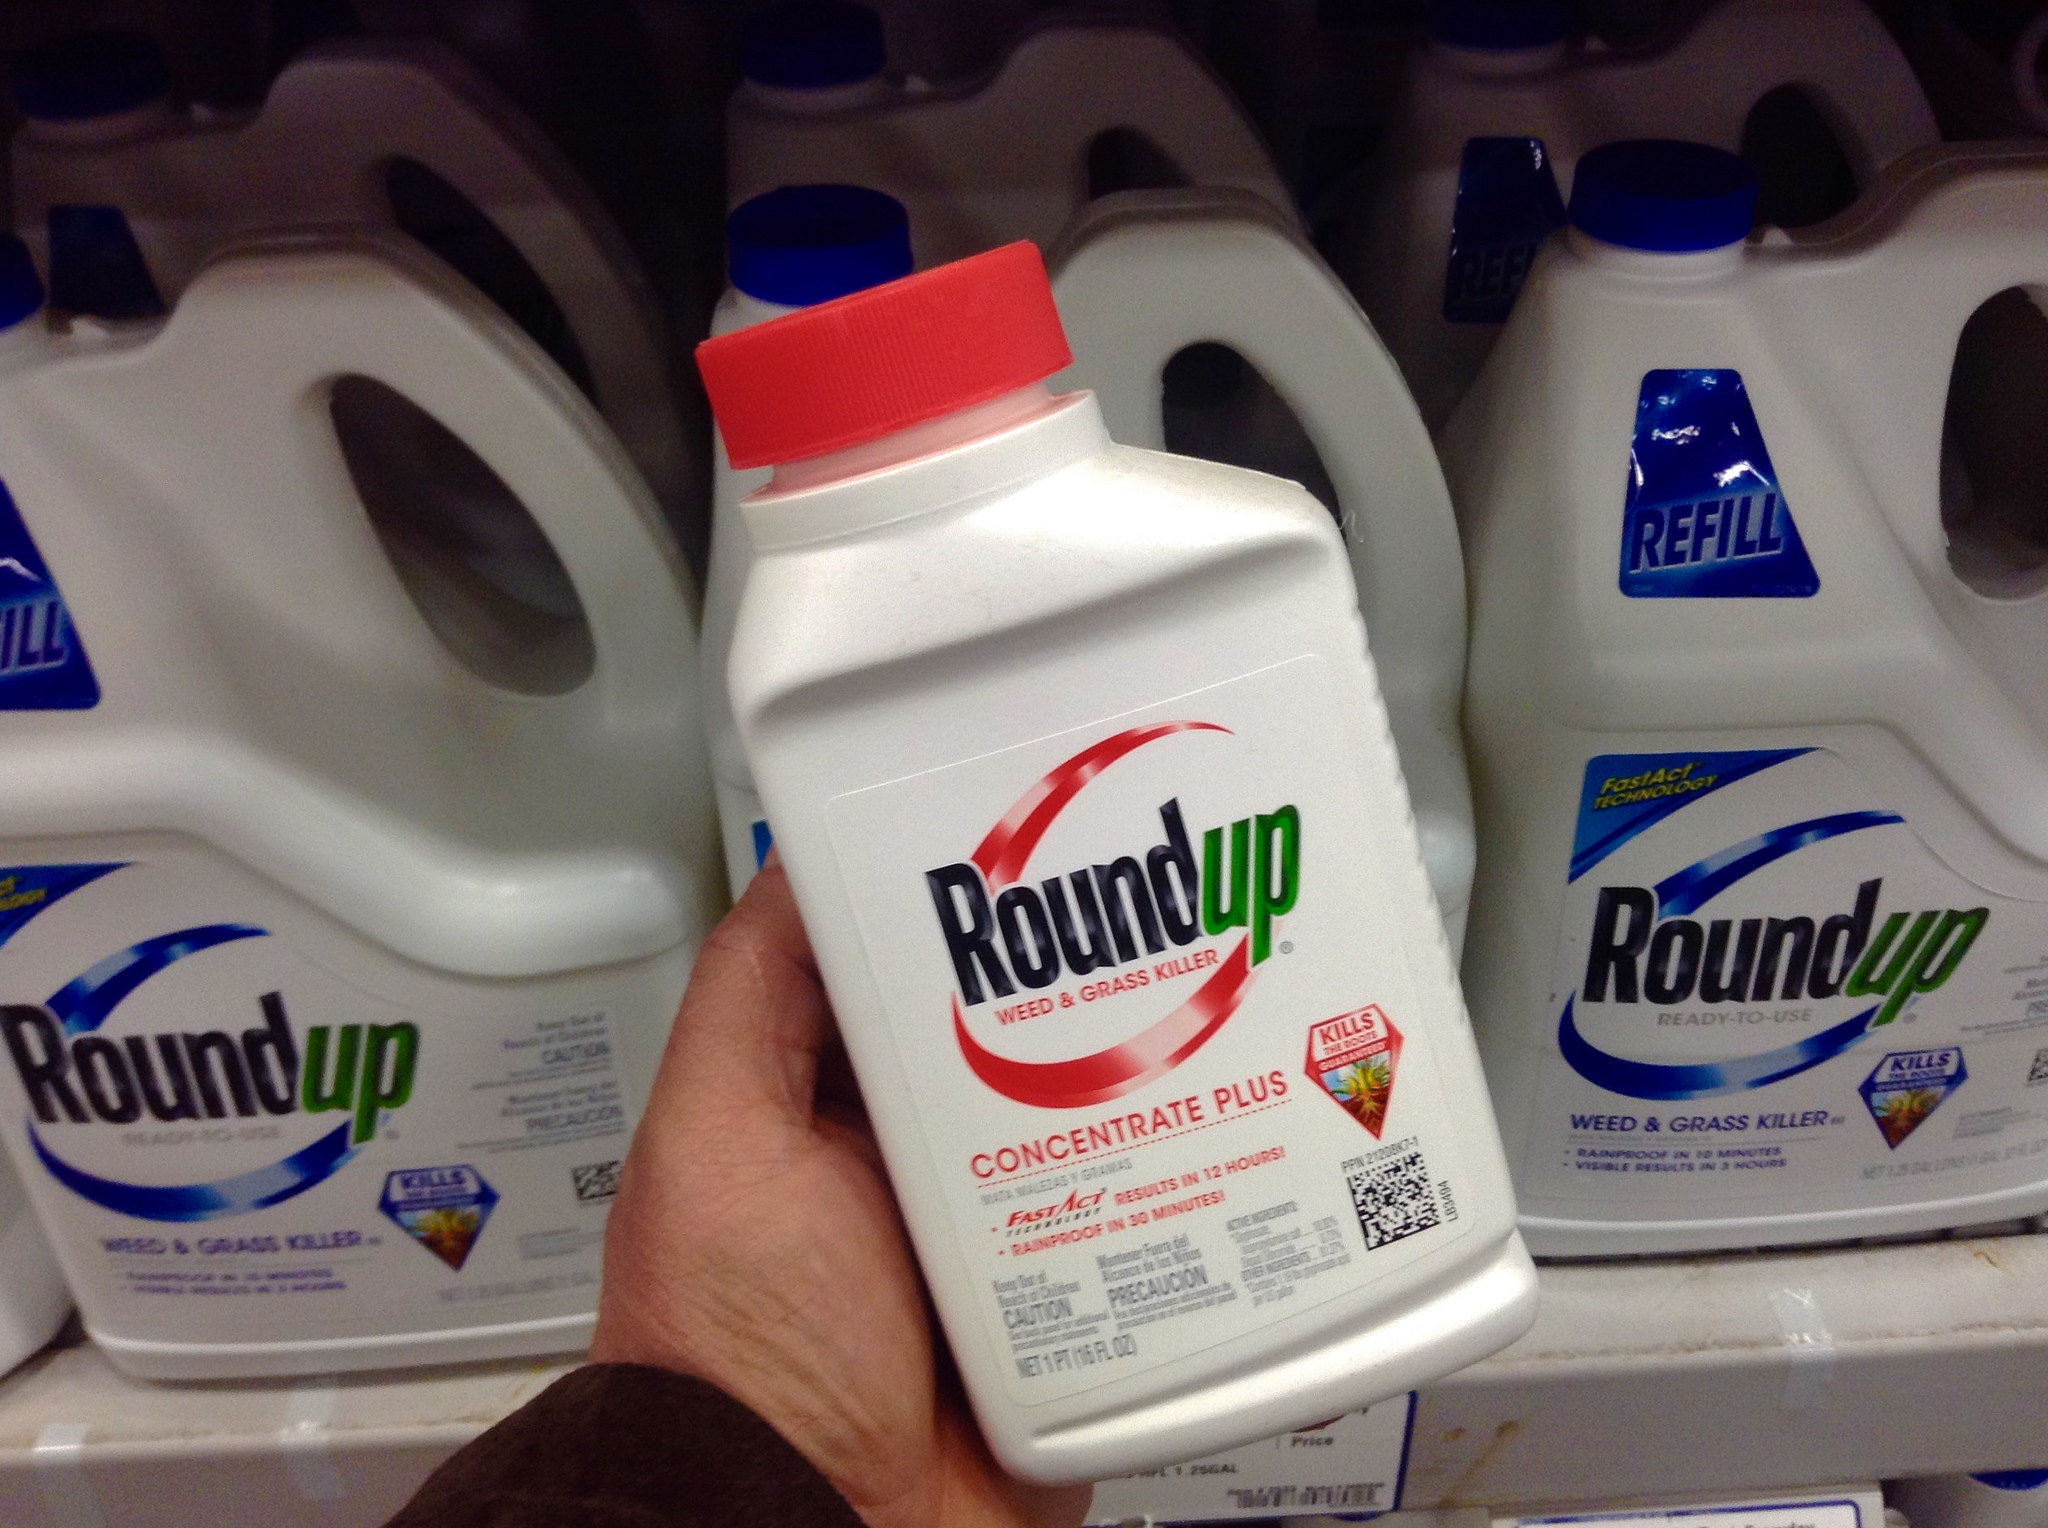 The French Ministry of Ecology declared a ban on the use of Monsanto's Roundup herbicide in the nation's nurseries and garden centers Sunday, citing the previous UN classification of the chemical glyphosate as possibly carcinogenic.